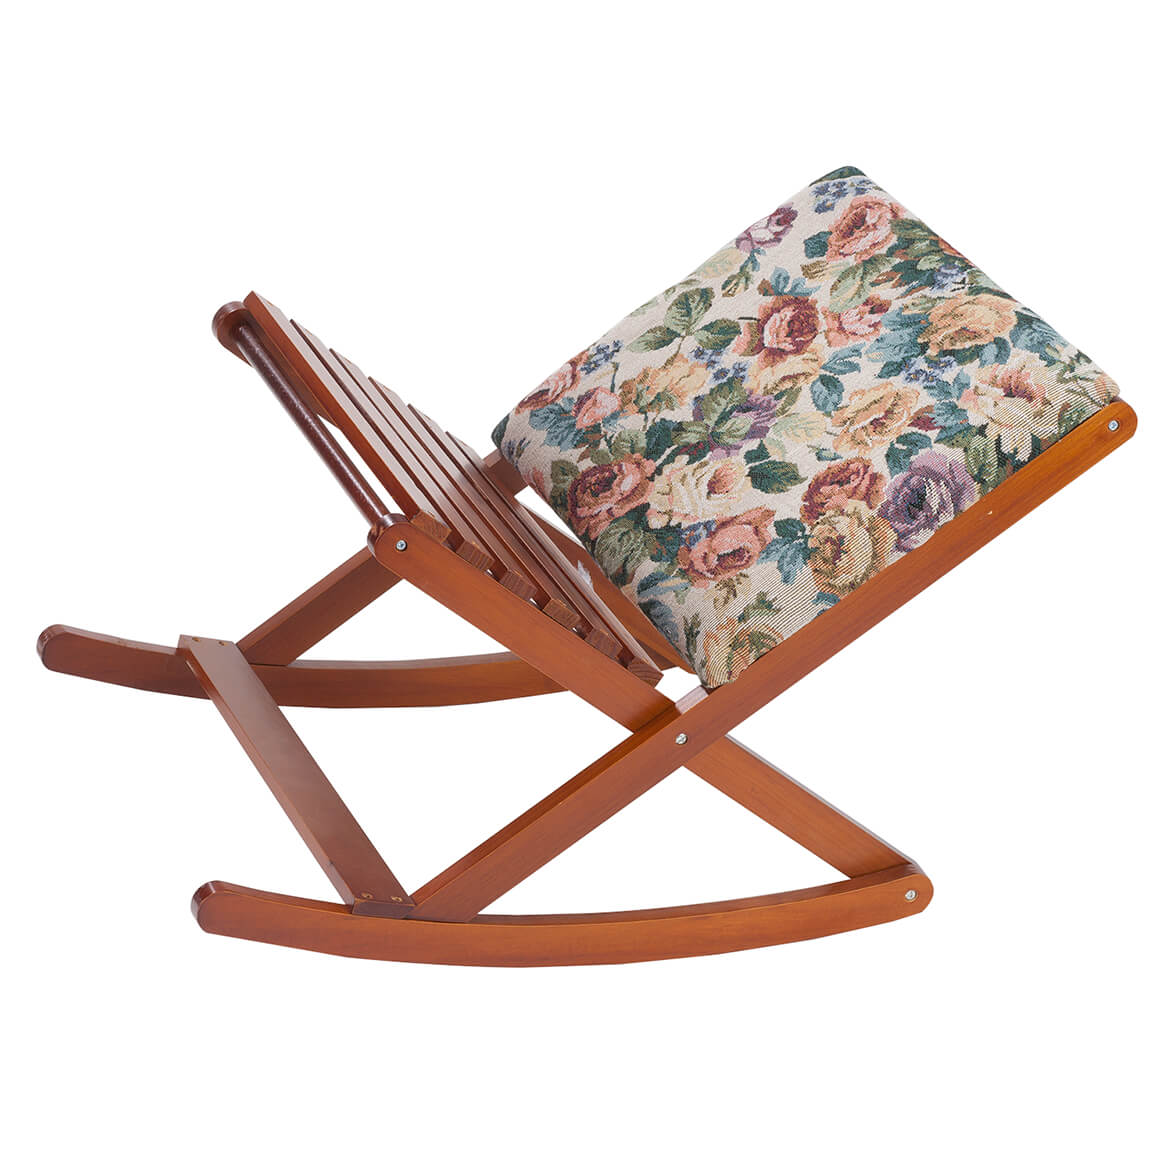 Deluxe Foldable Rocking Footrest The rocking footrest that moves with you is now even better, with extra width and height and 2 fabric choices! You'll love kicking back and relaxing as the padded side cradles your calves and the wood side supports your soles at the perfect angle. Specify style: elegant floral tapestry or soft and cozy sherpa. Sturdy wood frame folds flat for easy storage. Measures 24  L x 16  W x 14 1/2  H when open, 5  H when folded.